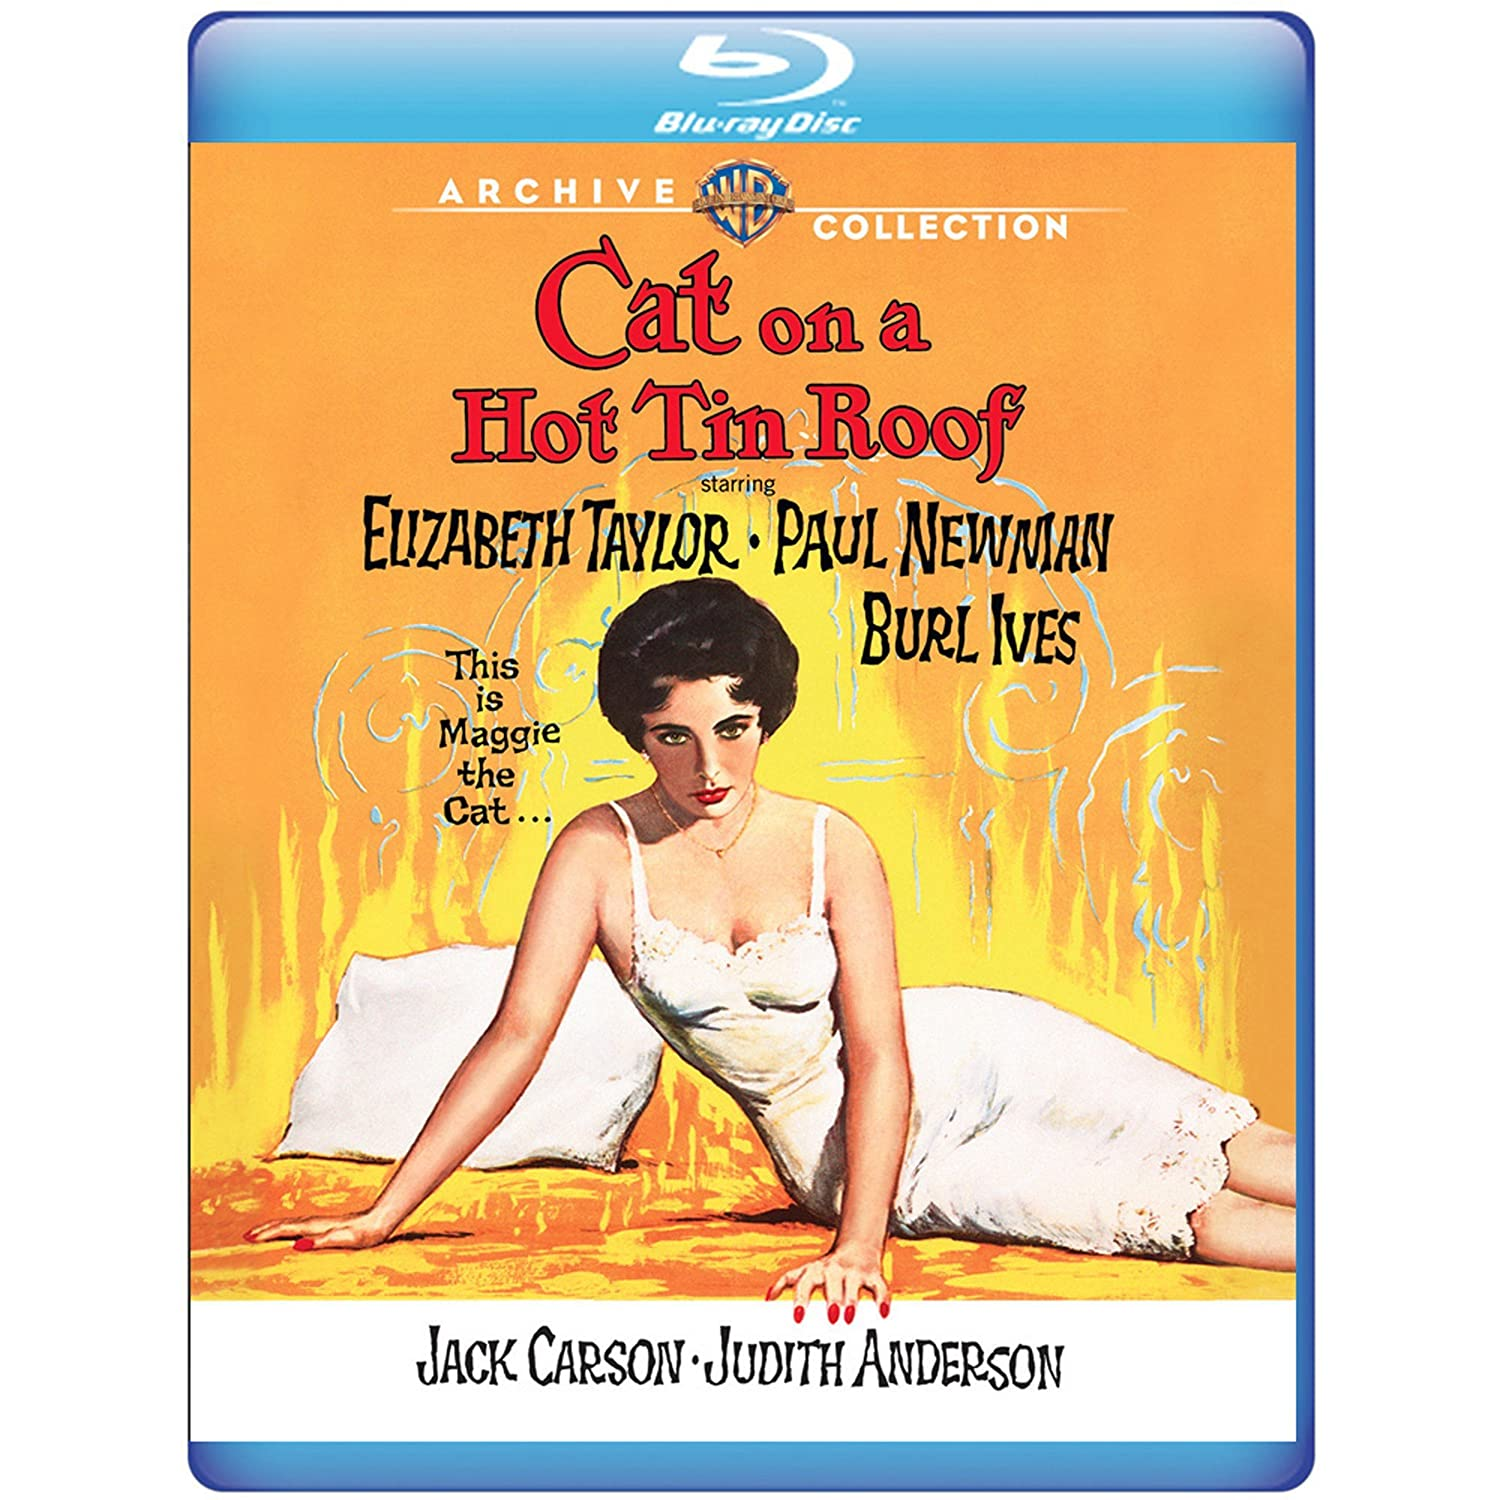 Amazon.com: Cat On A Hot Tin Roof (1958) [Blu Ray]: Elizabeth Taylor, Paul  Newman, Burl Ives, Jack Carson, Judith Anderson, Richard Brooks: Movies U0026 TV